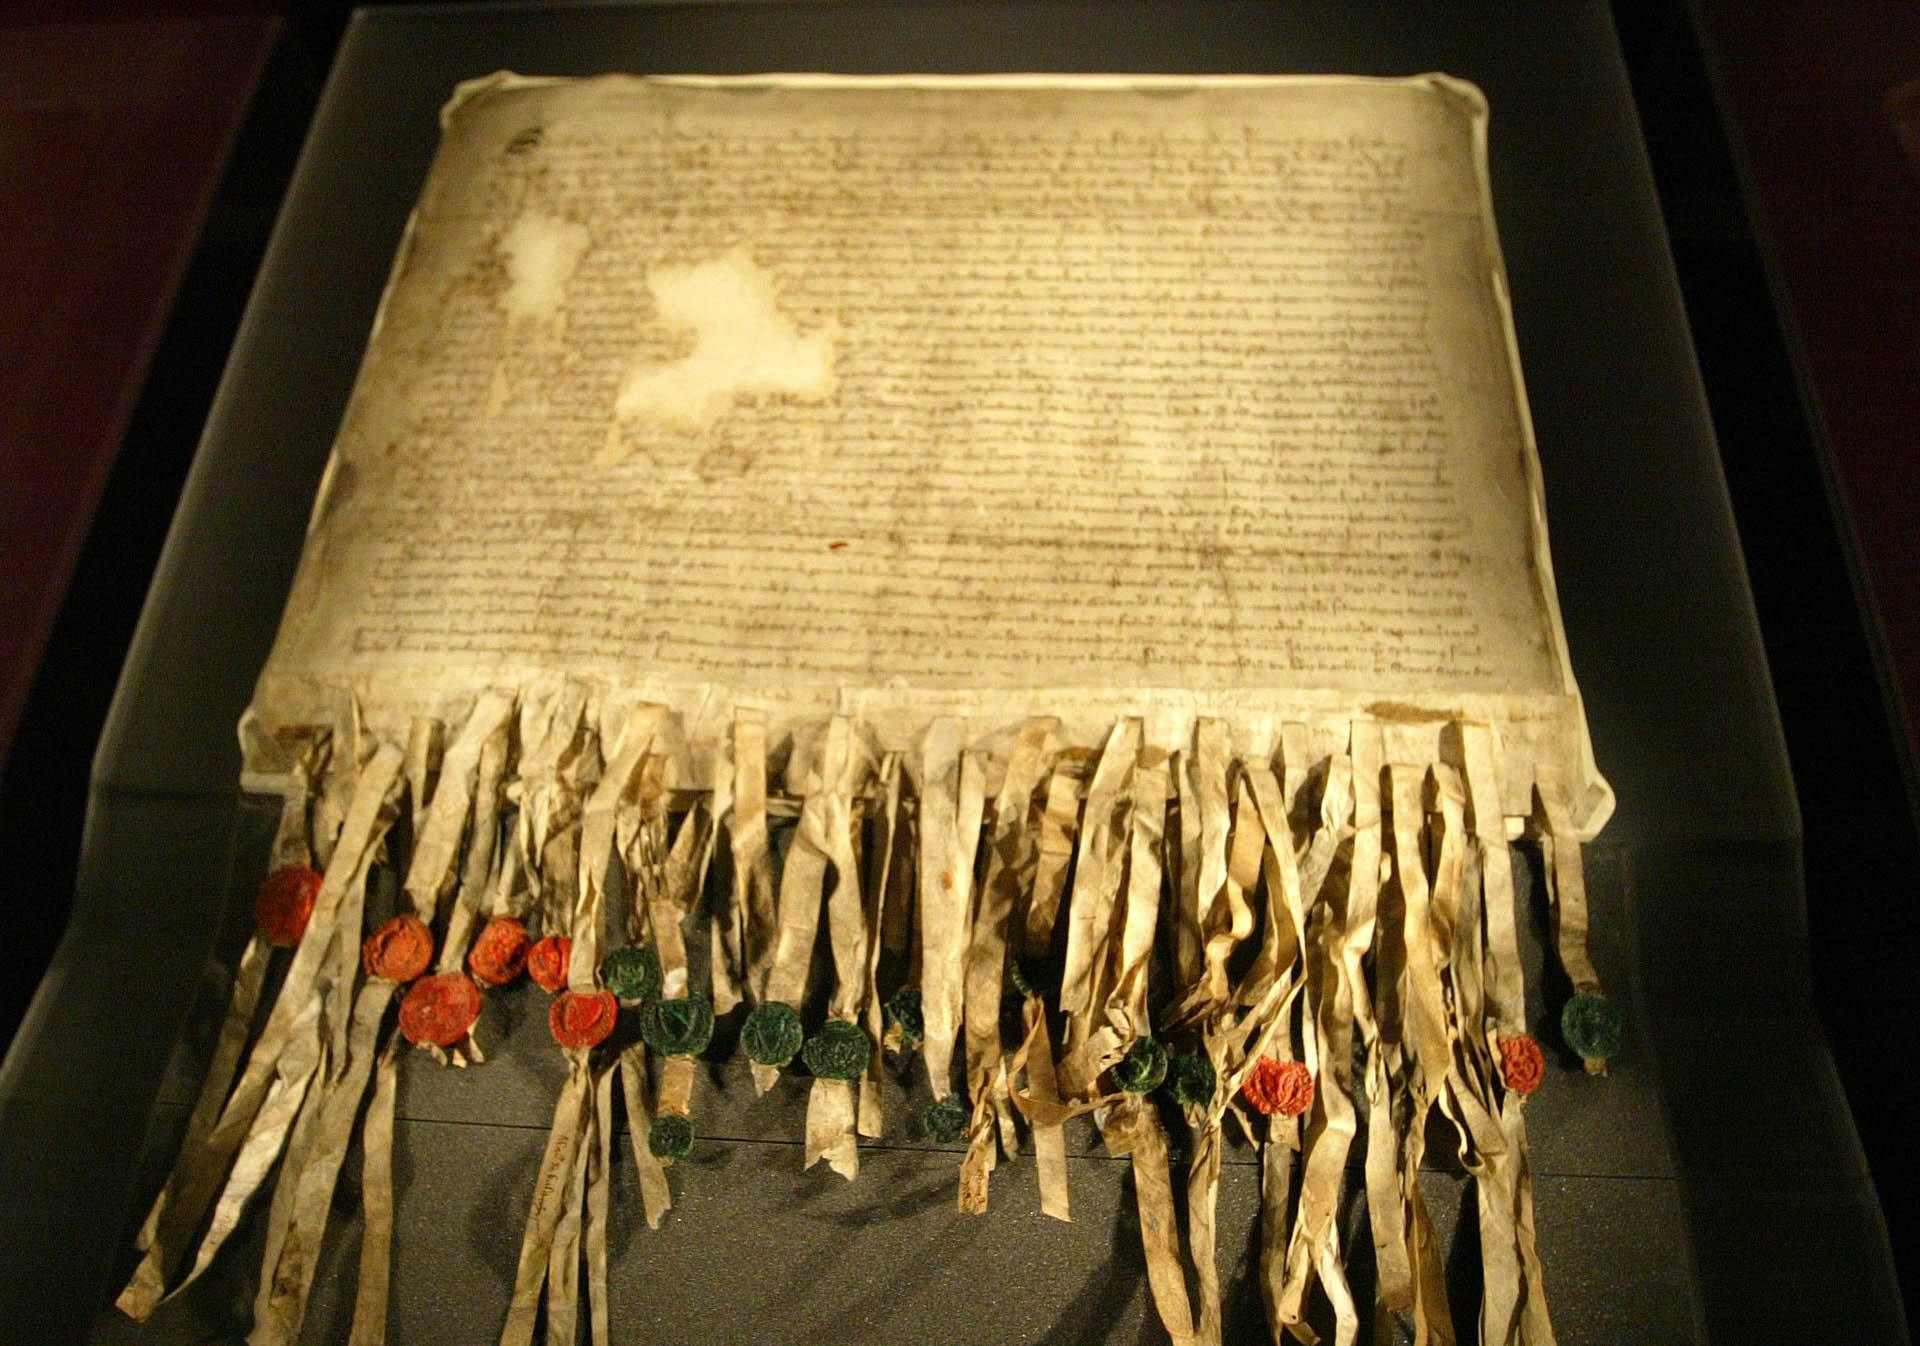 The 700-year-old Declaration of Arbroath